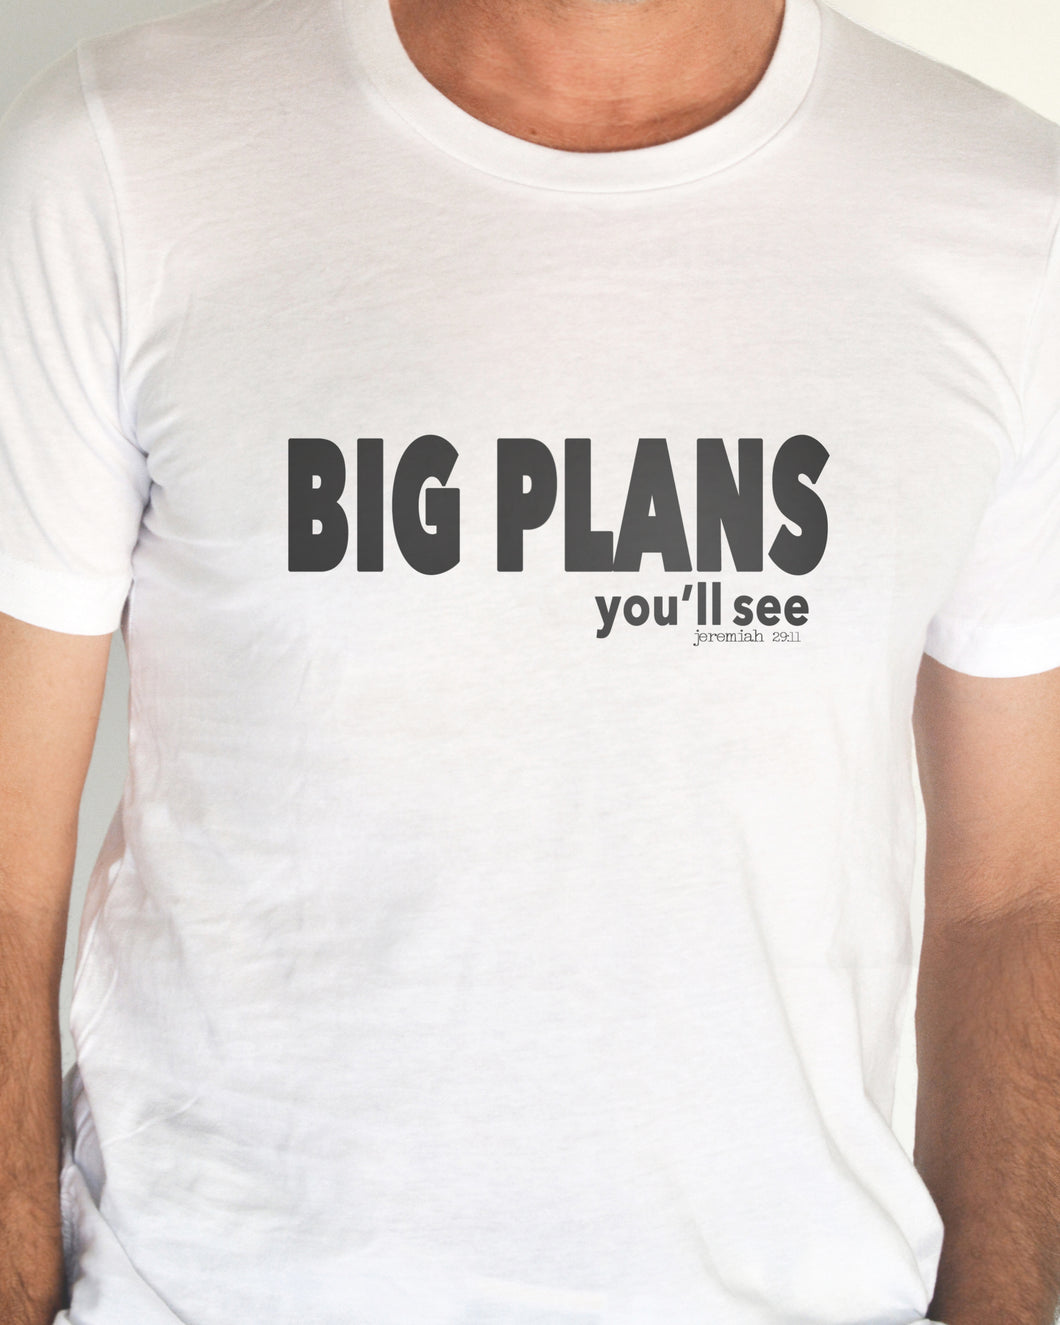 Big Plans (Unisex T-shirt with 2-sided design) in 6 colors